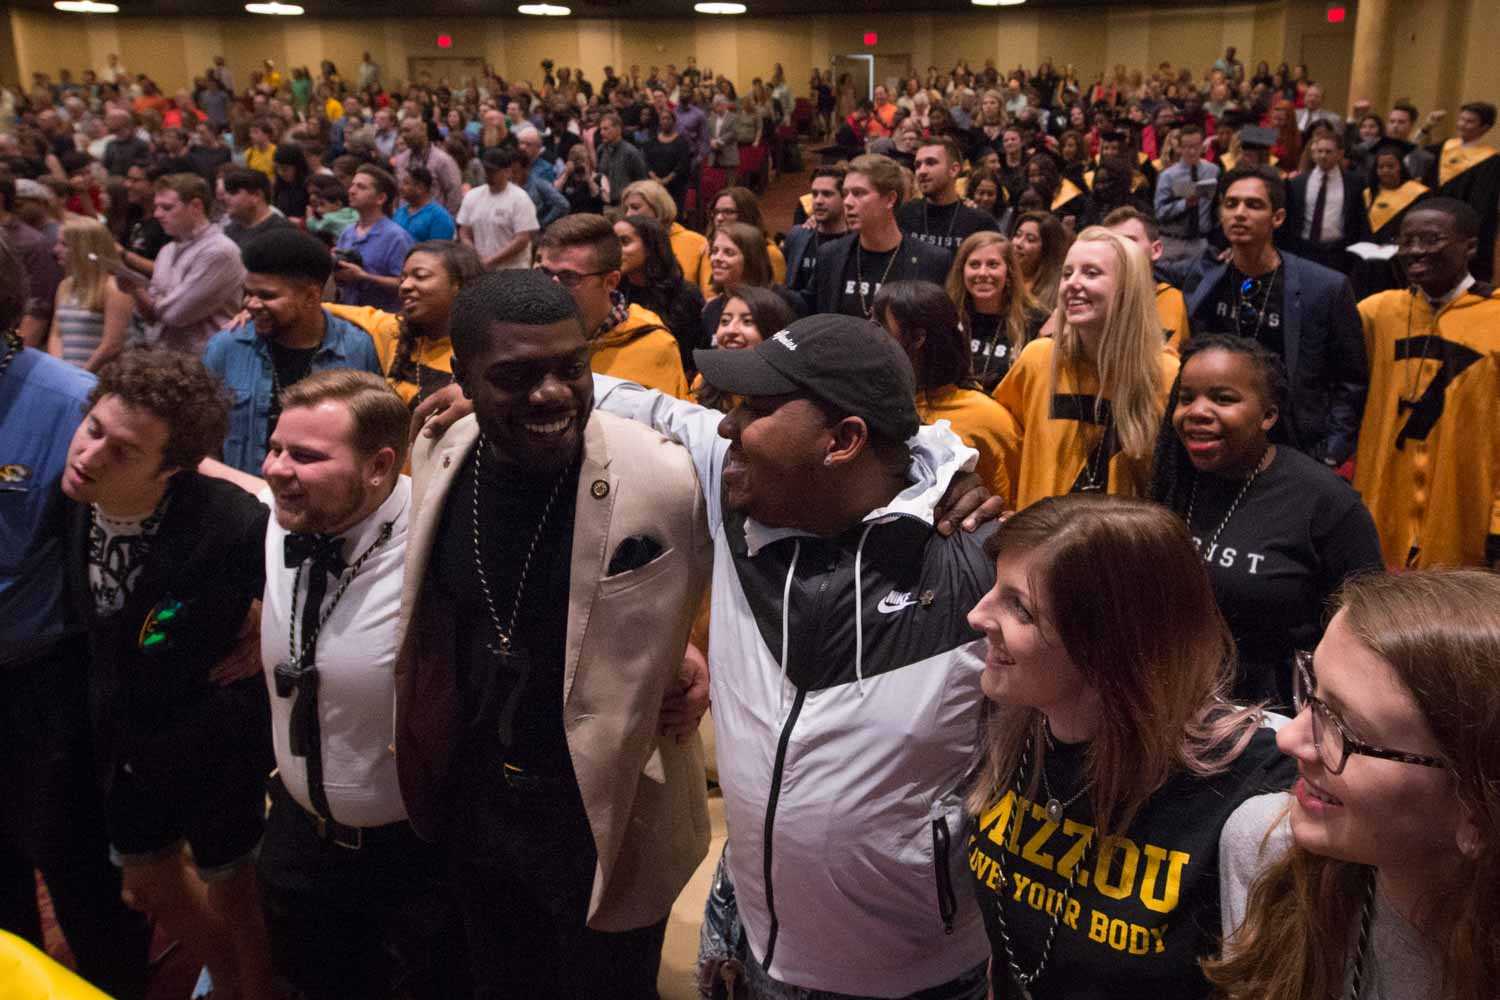 Crowd members embrace one another and sing the alma mater, Old Missouri, after Tap Day comes to an end.